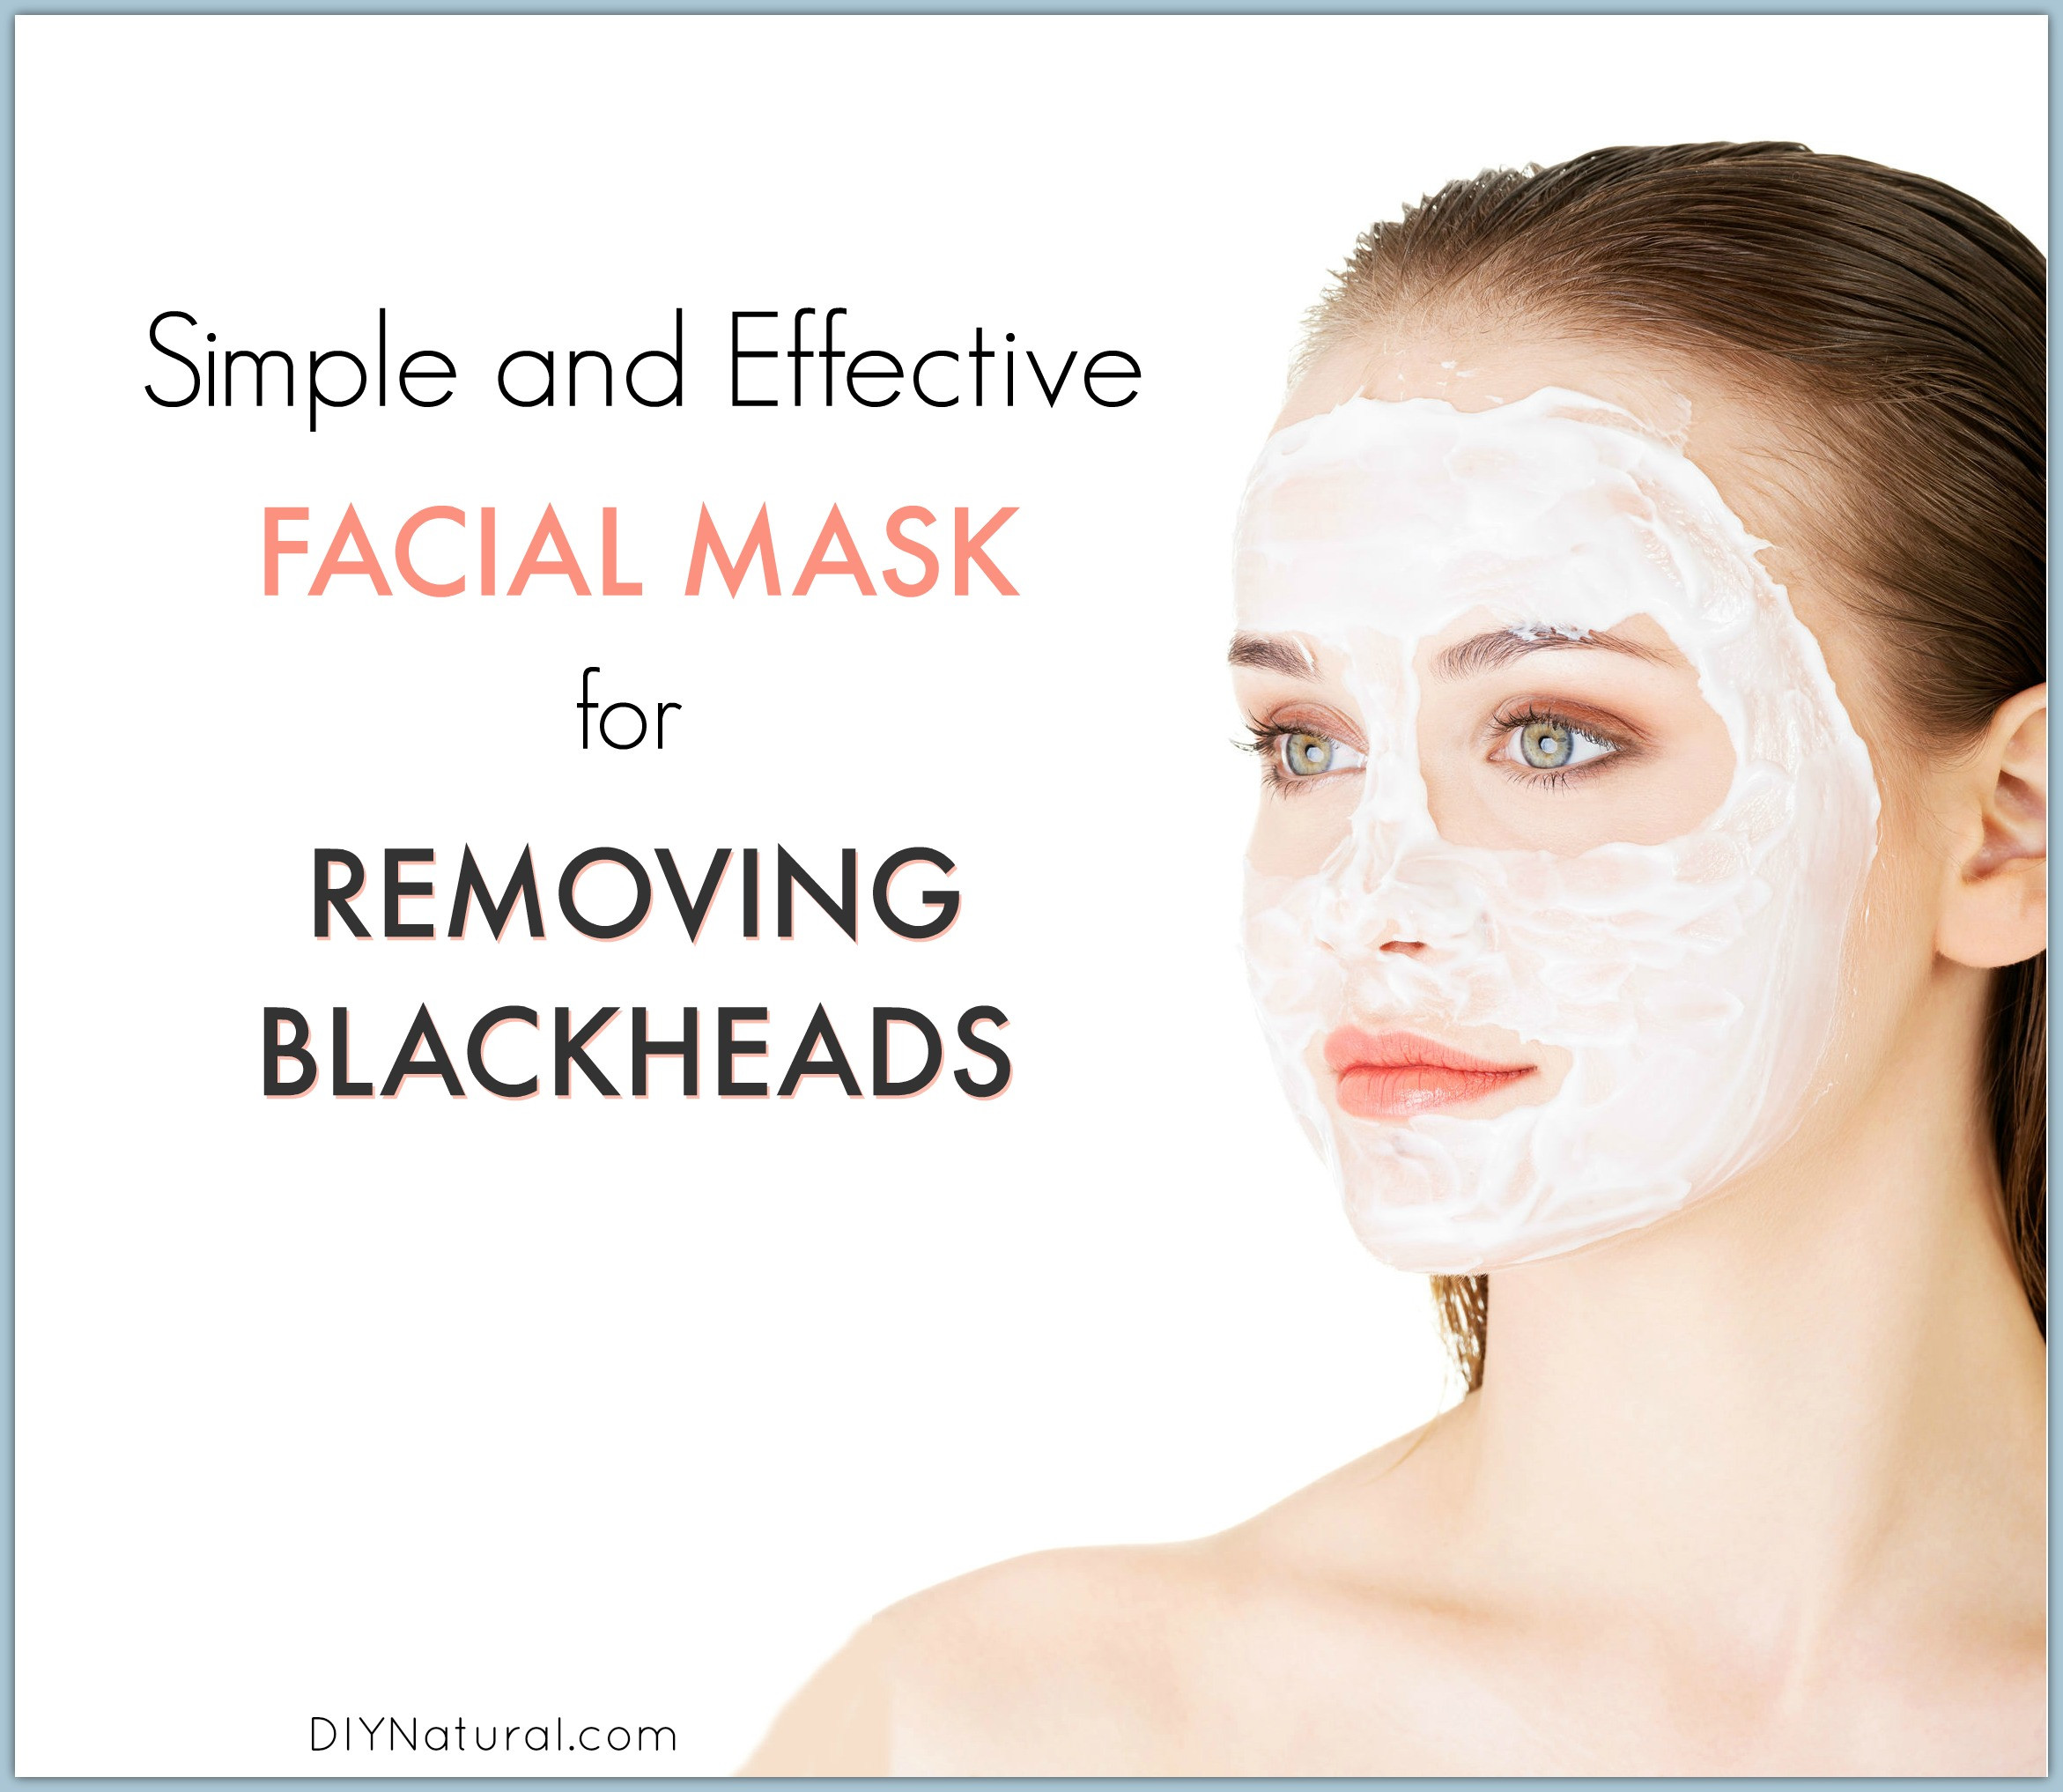 DIY Blackhead Mask  Blackheads A Quick and Easy Homemade Blackhead Mask